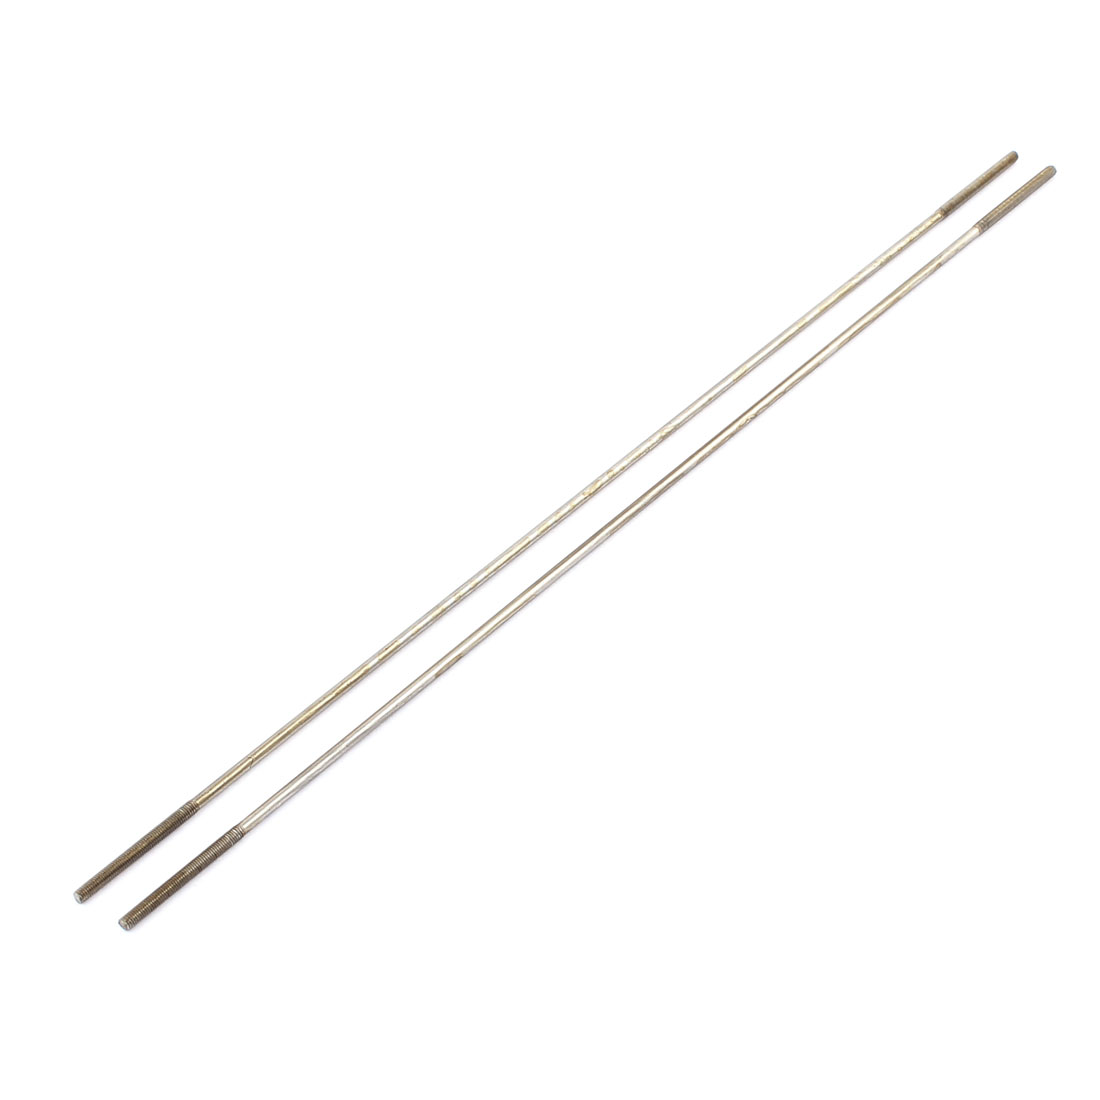 2pcs RC Airplane Parts 3mm Dia Threaded Both End Metal Push Rod 300mm Length